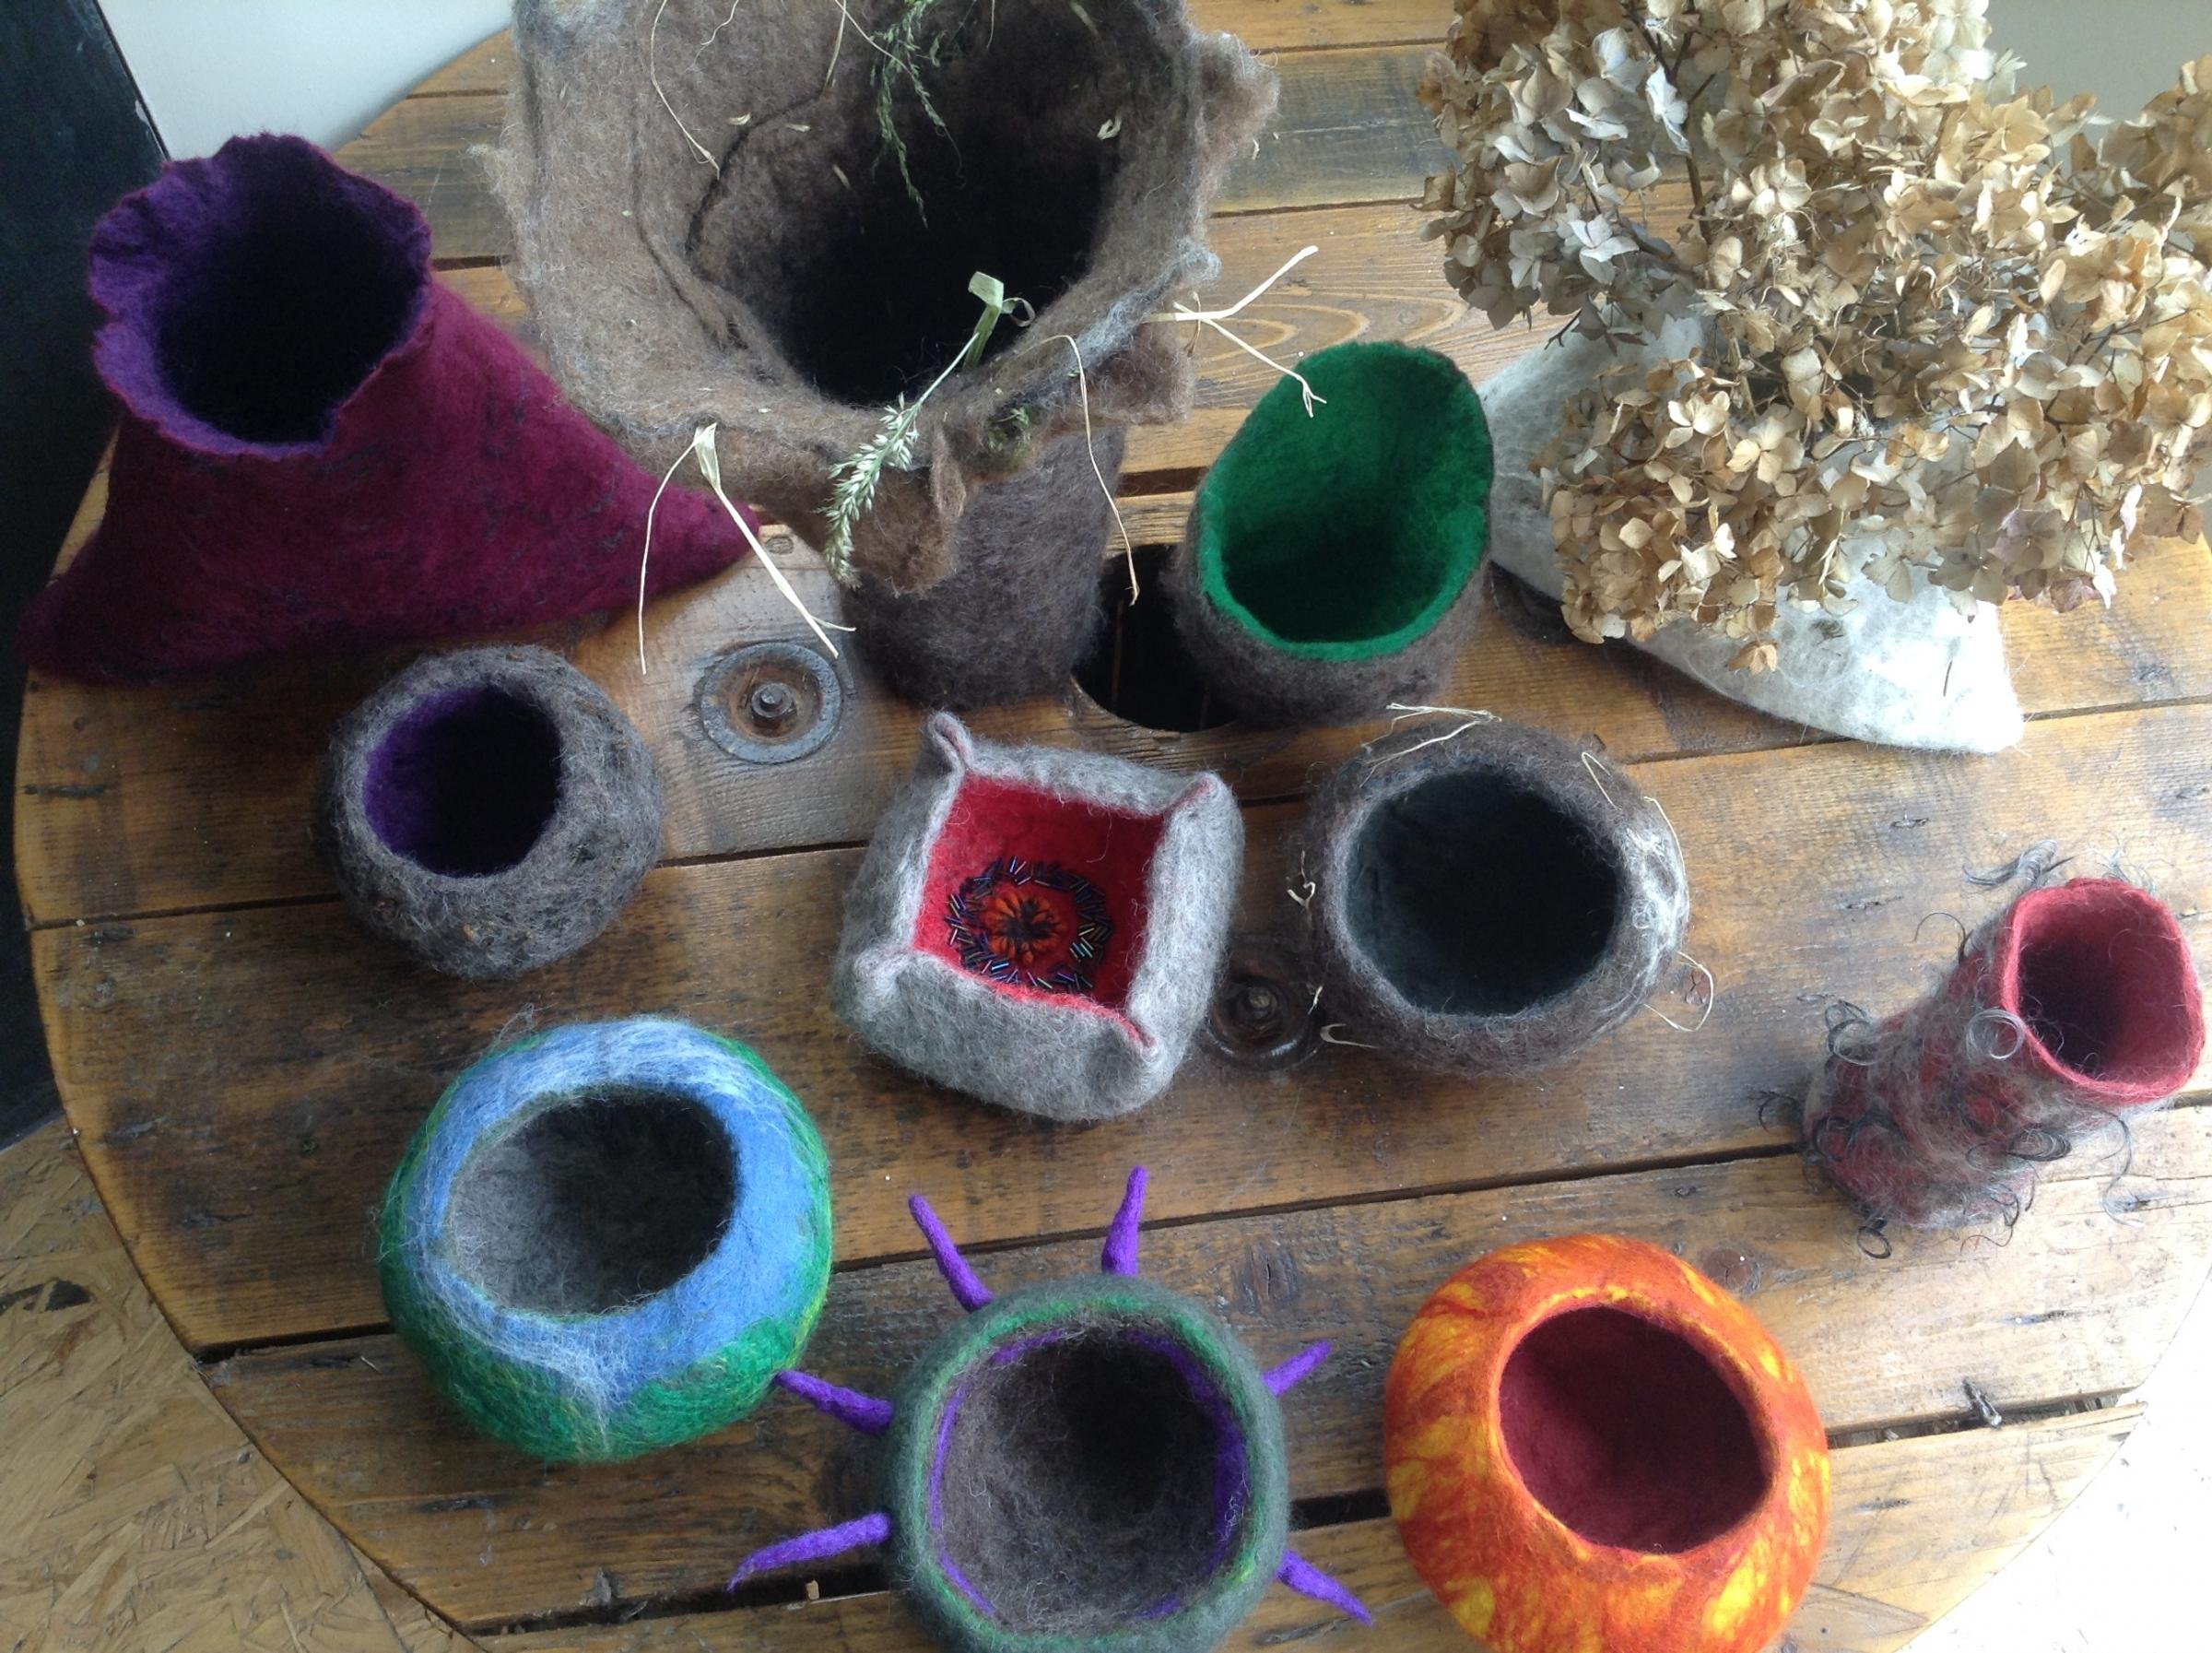 Felted pieces made by Fiona Evans